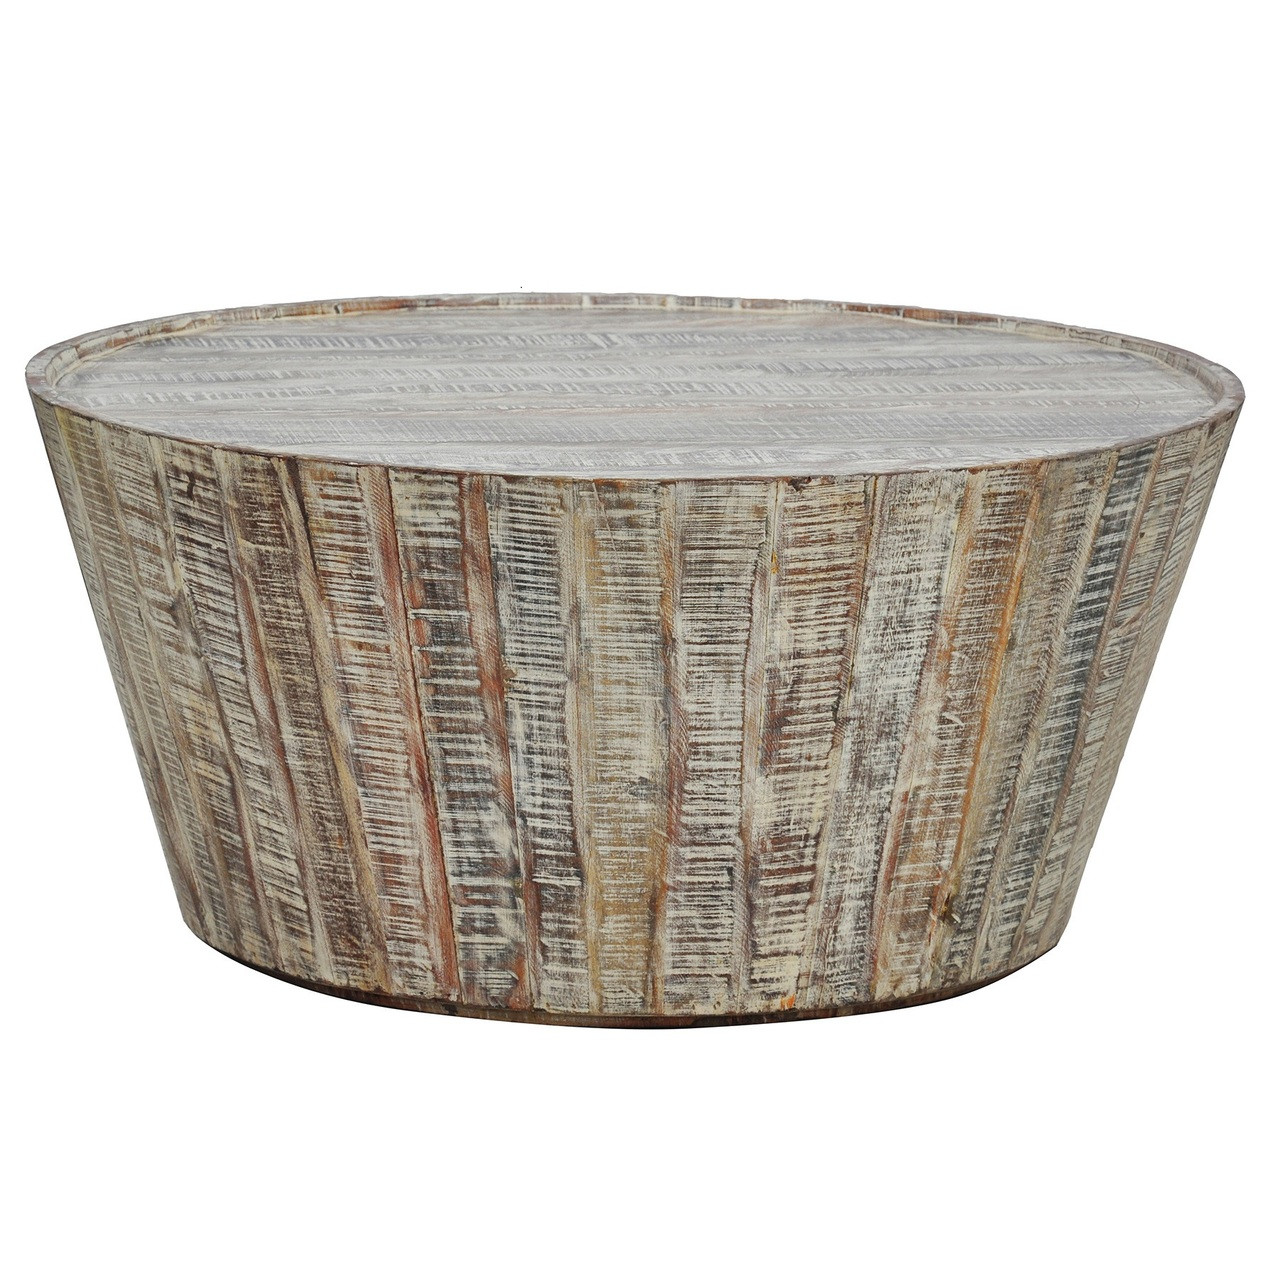 Hampton rustic wood round barrel coffee table 38 zin home hampton rustic wood round barrel coffee table 38 geotapseo Images